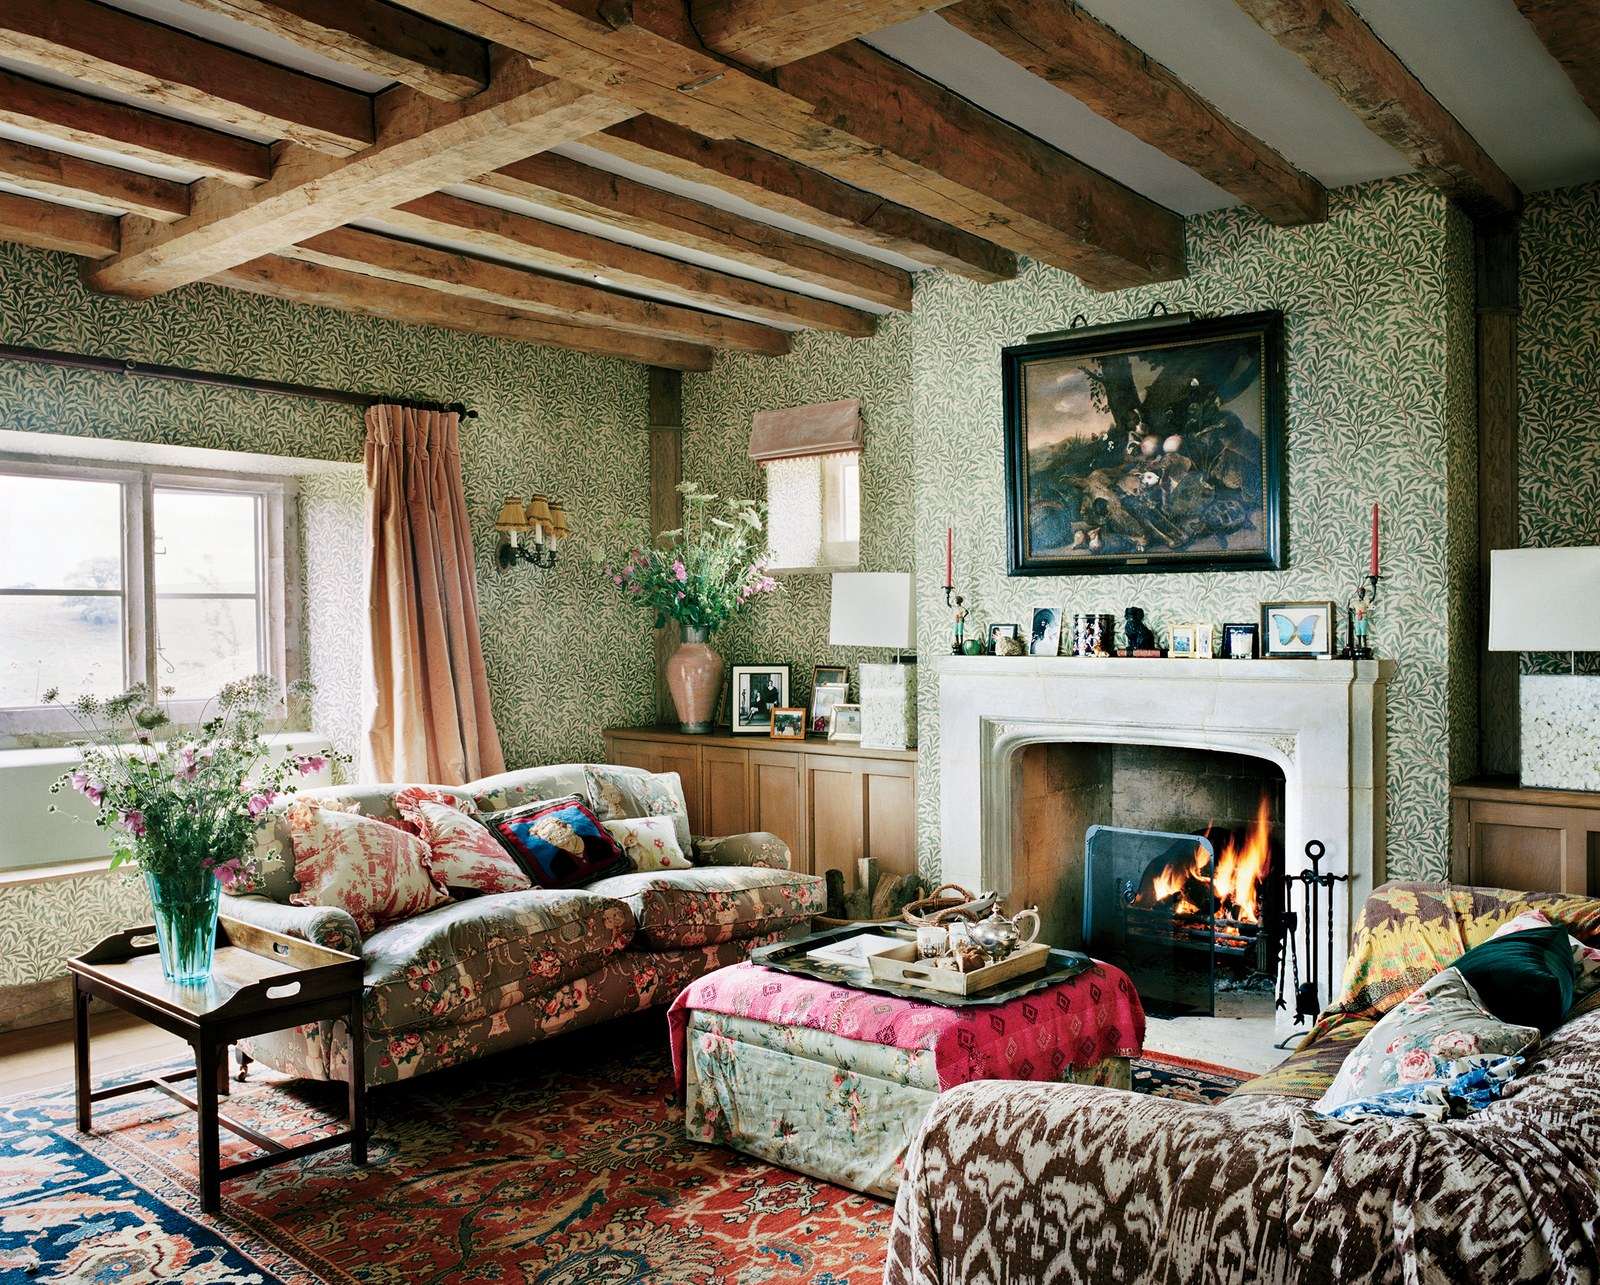 Décor Inspiration: Plum Syke's English Countryside Cottage